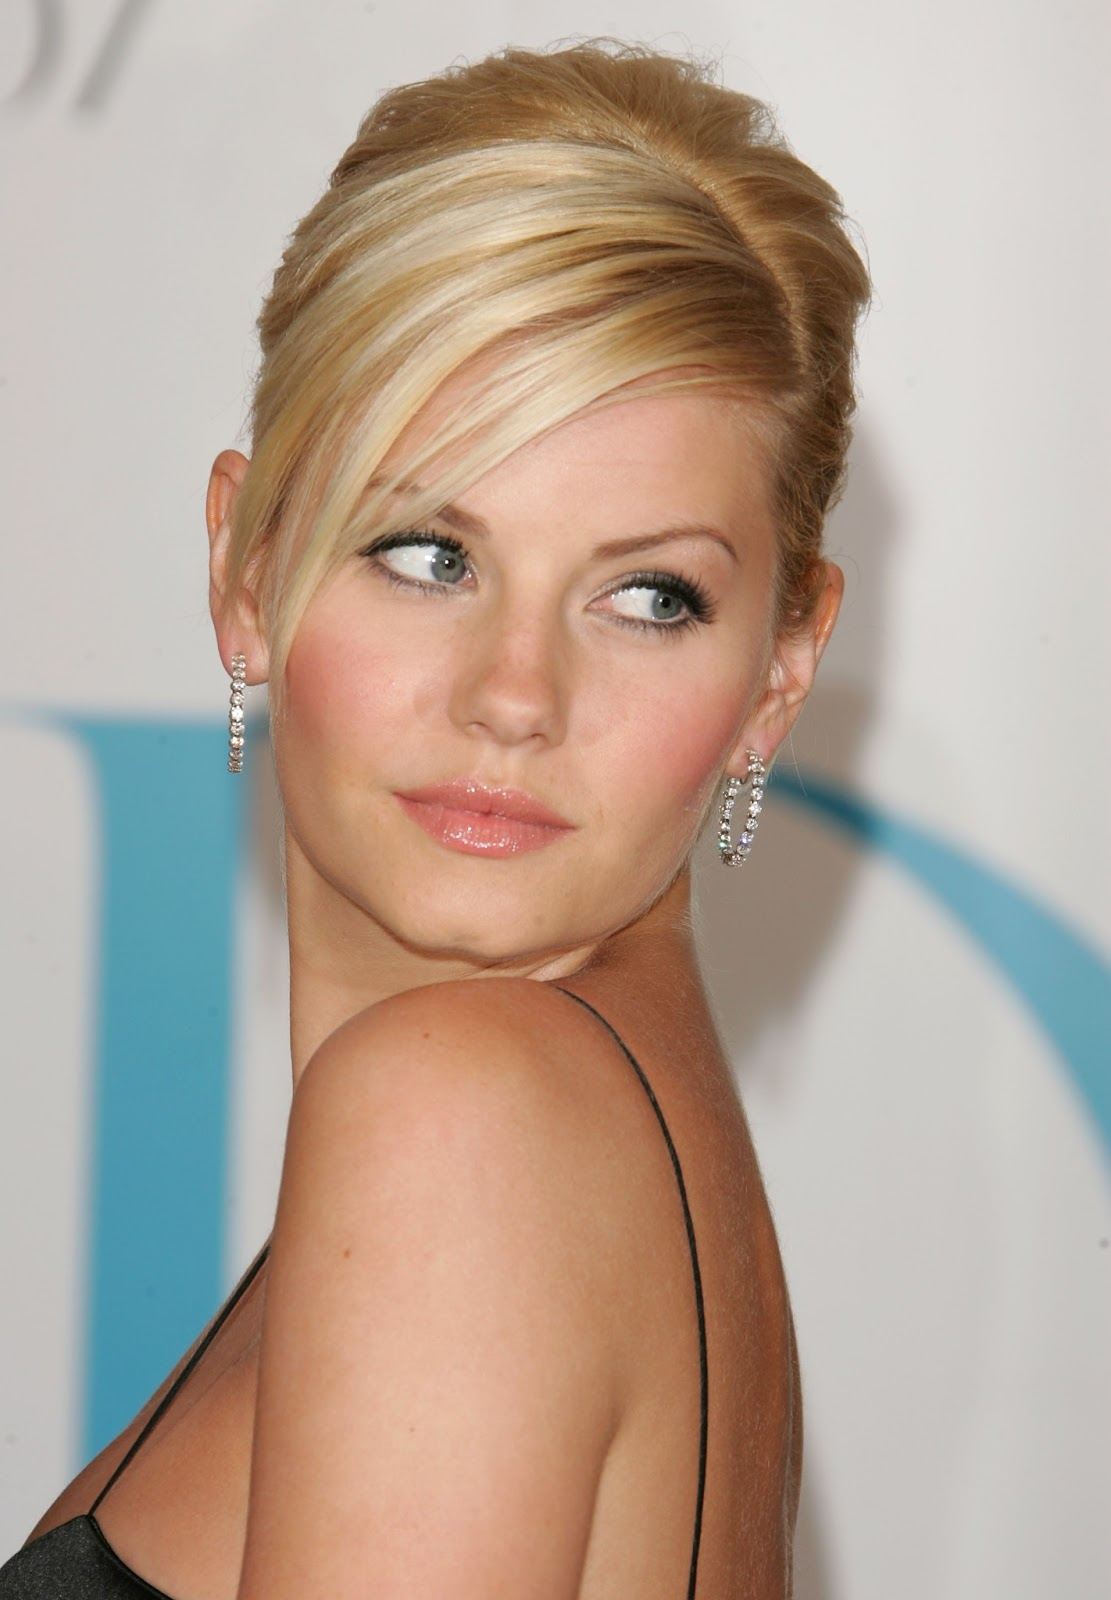 Elisha Cuthbert Latest Photos: Elisha Cuthbert Hot Hd Wallpapers